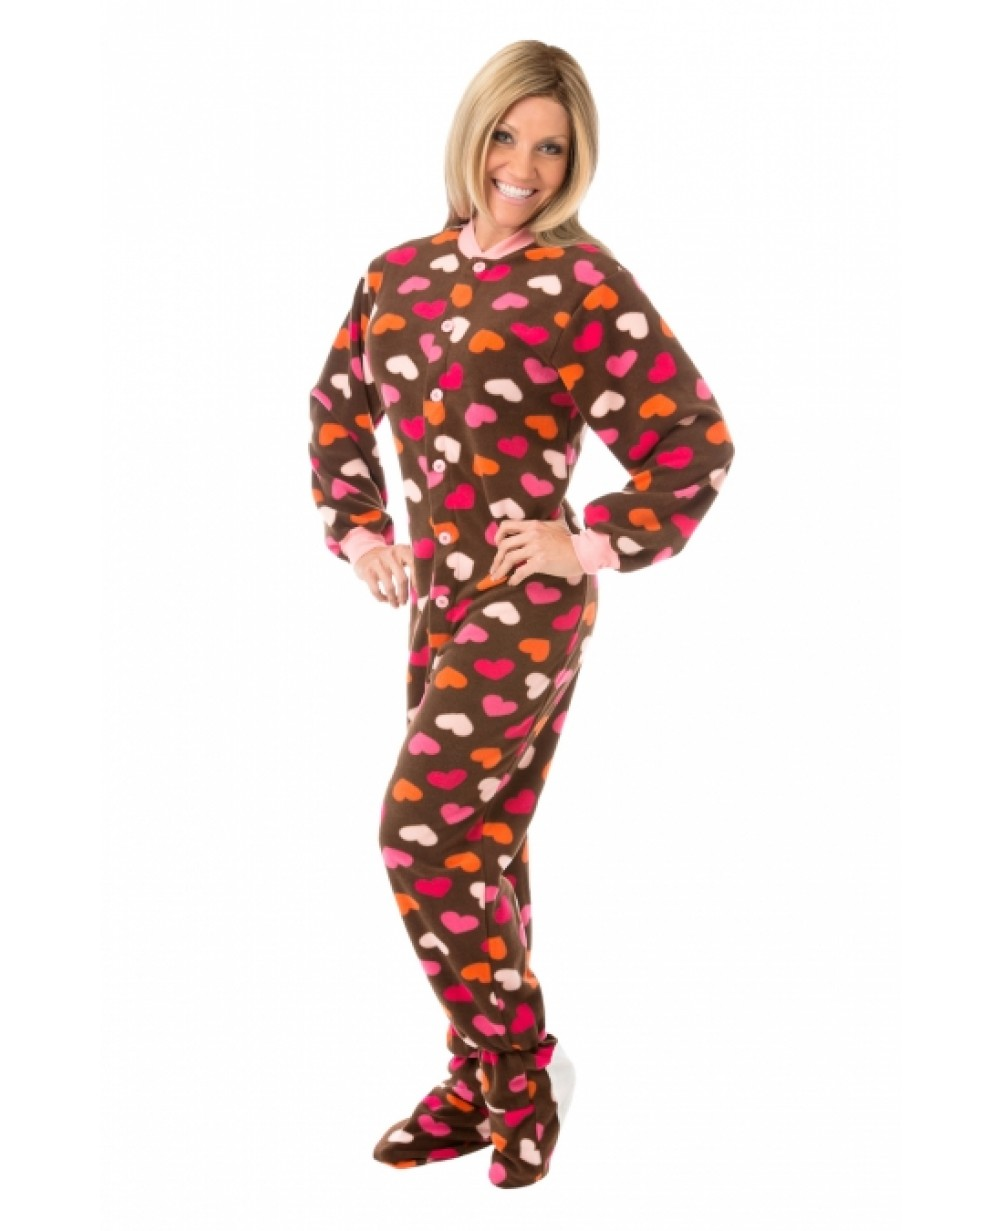 Adult footed sleepwear